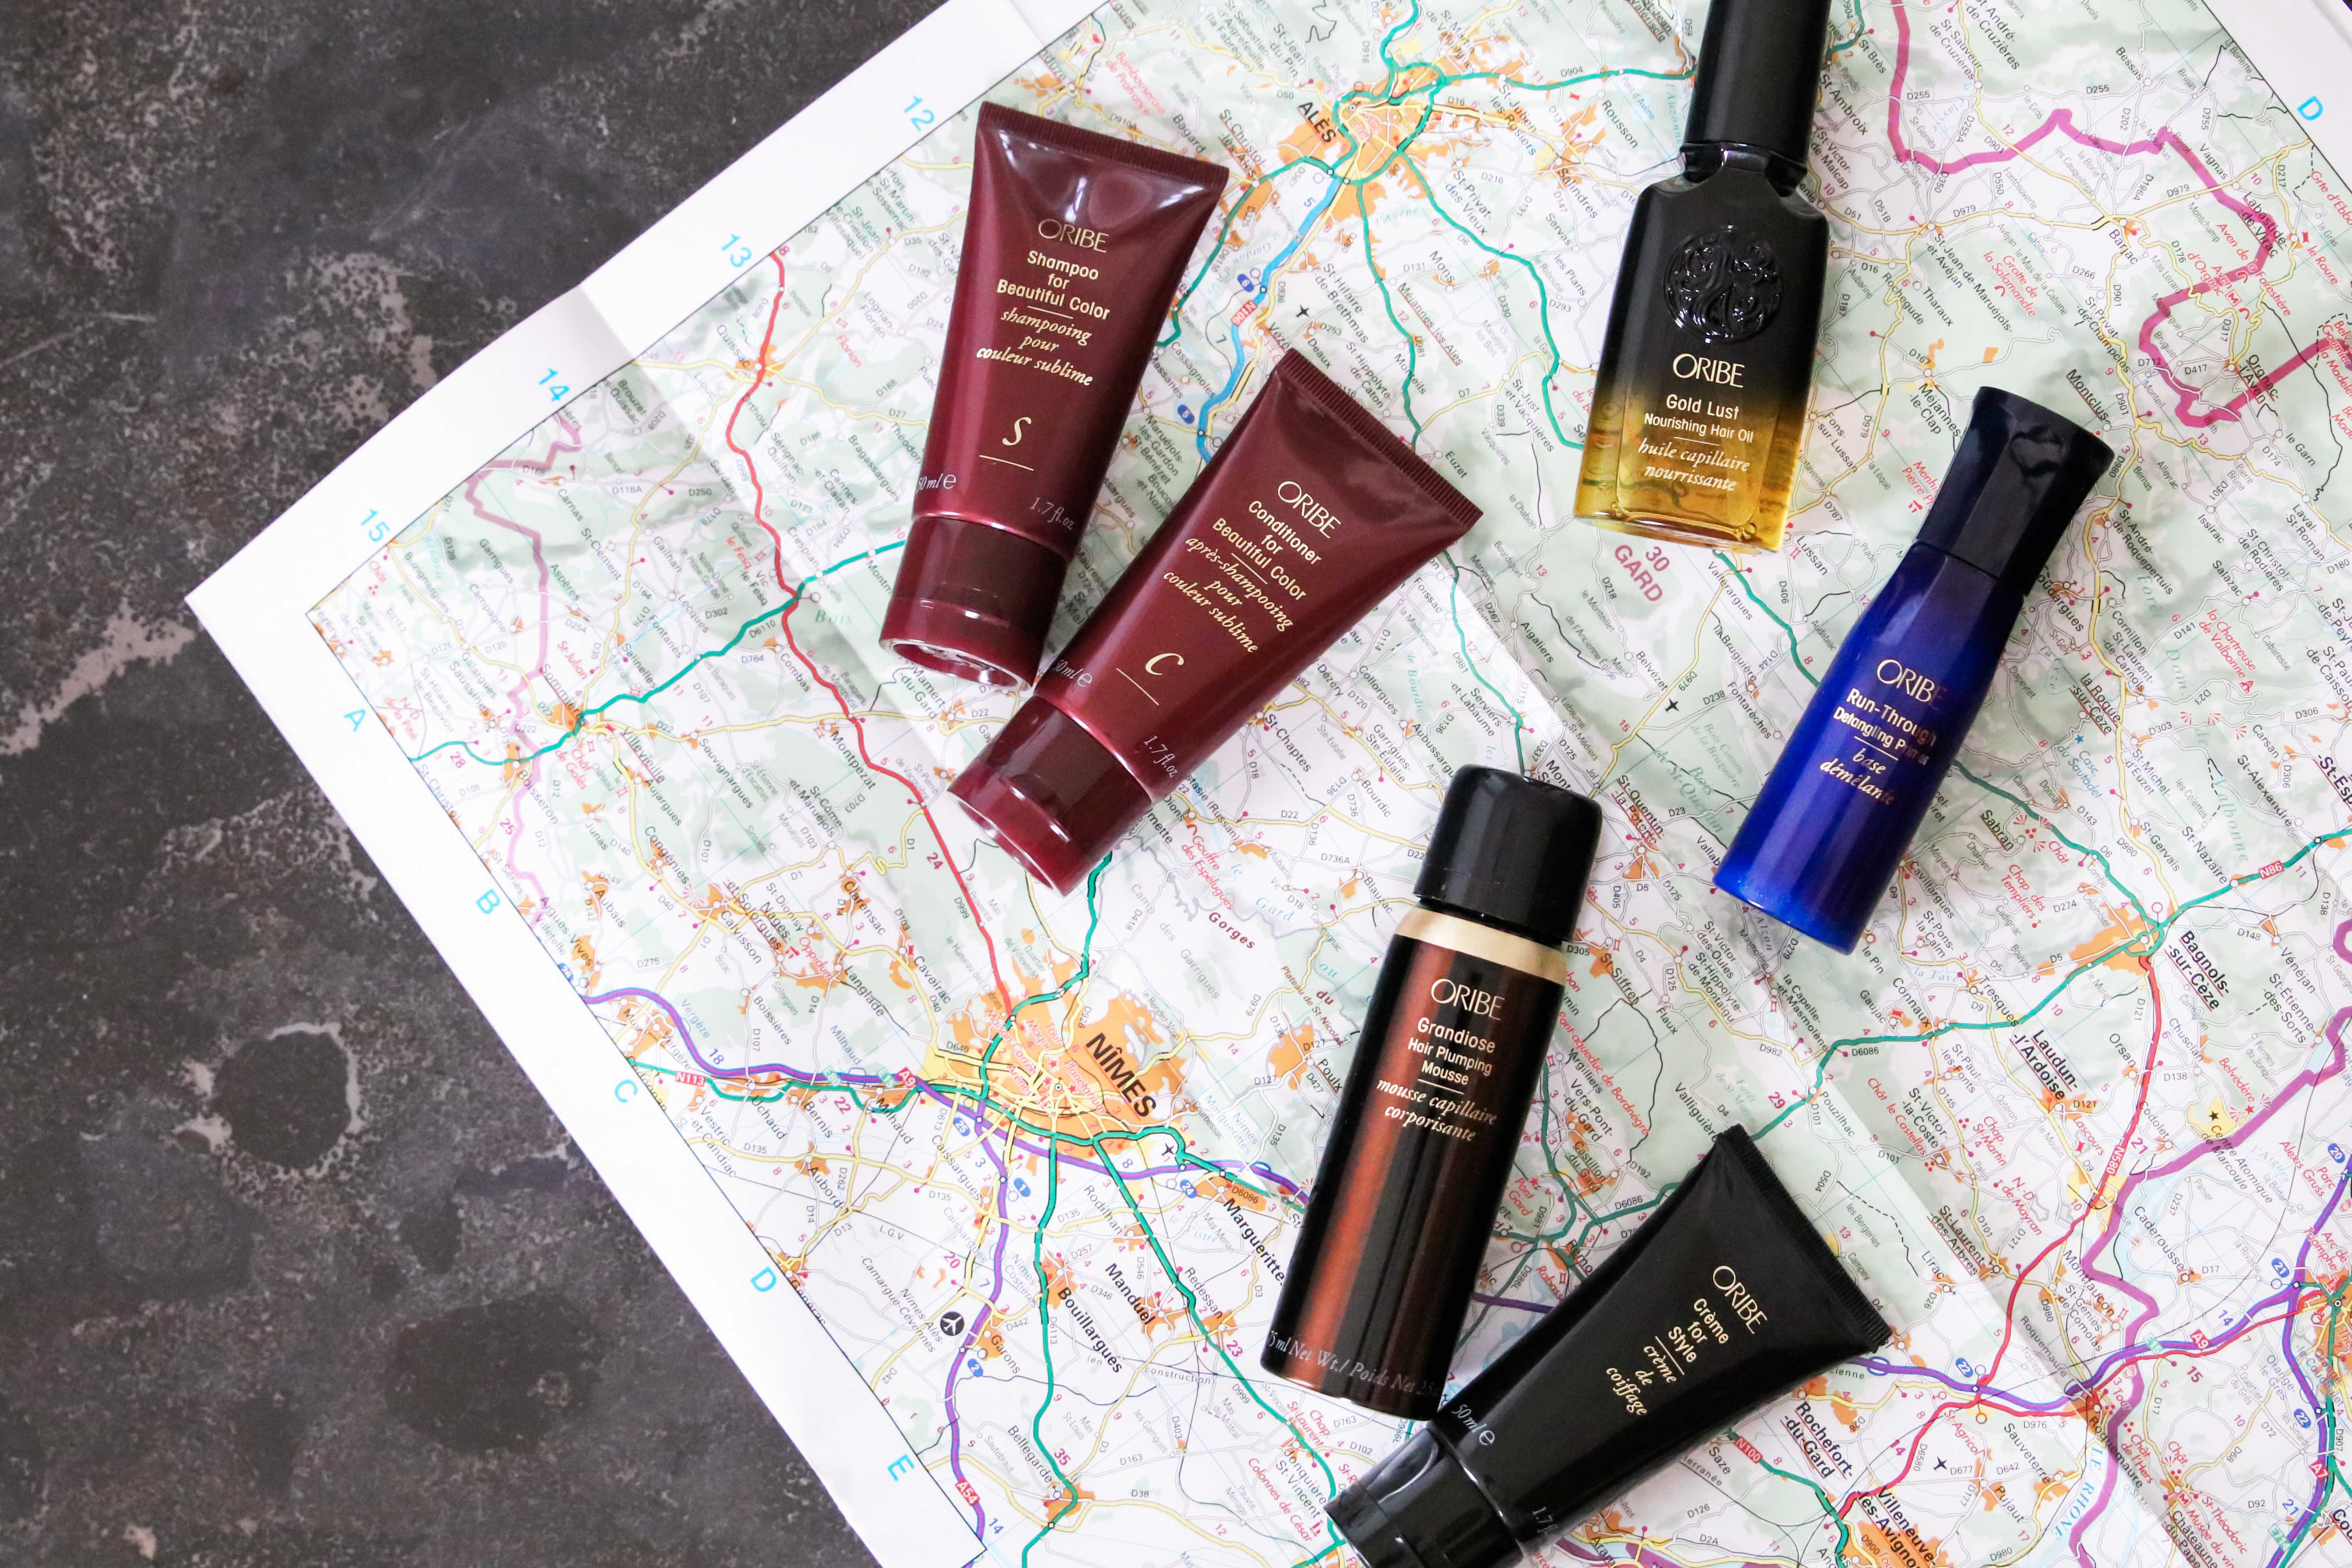 oribe travel products